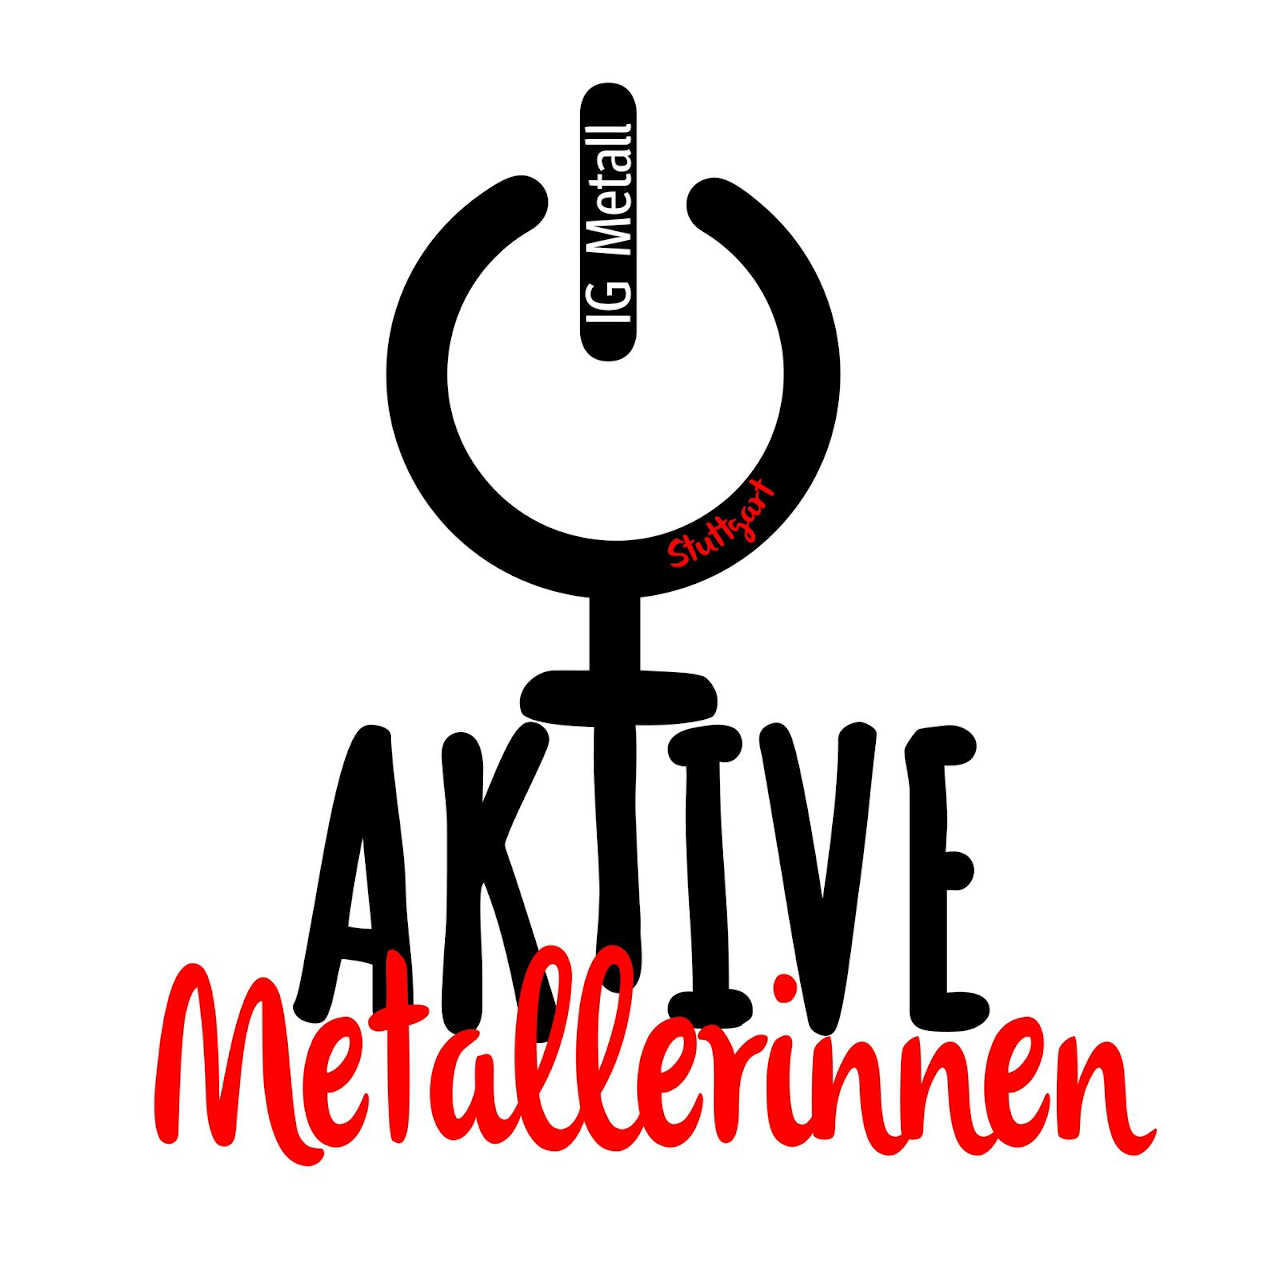 Aktive Metallerinnen (AM)